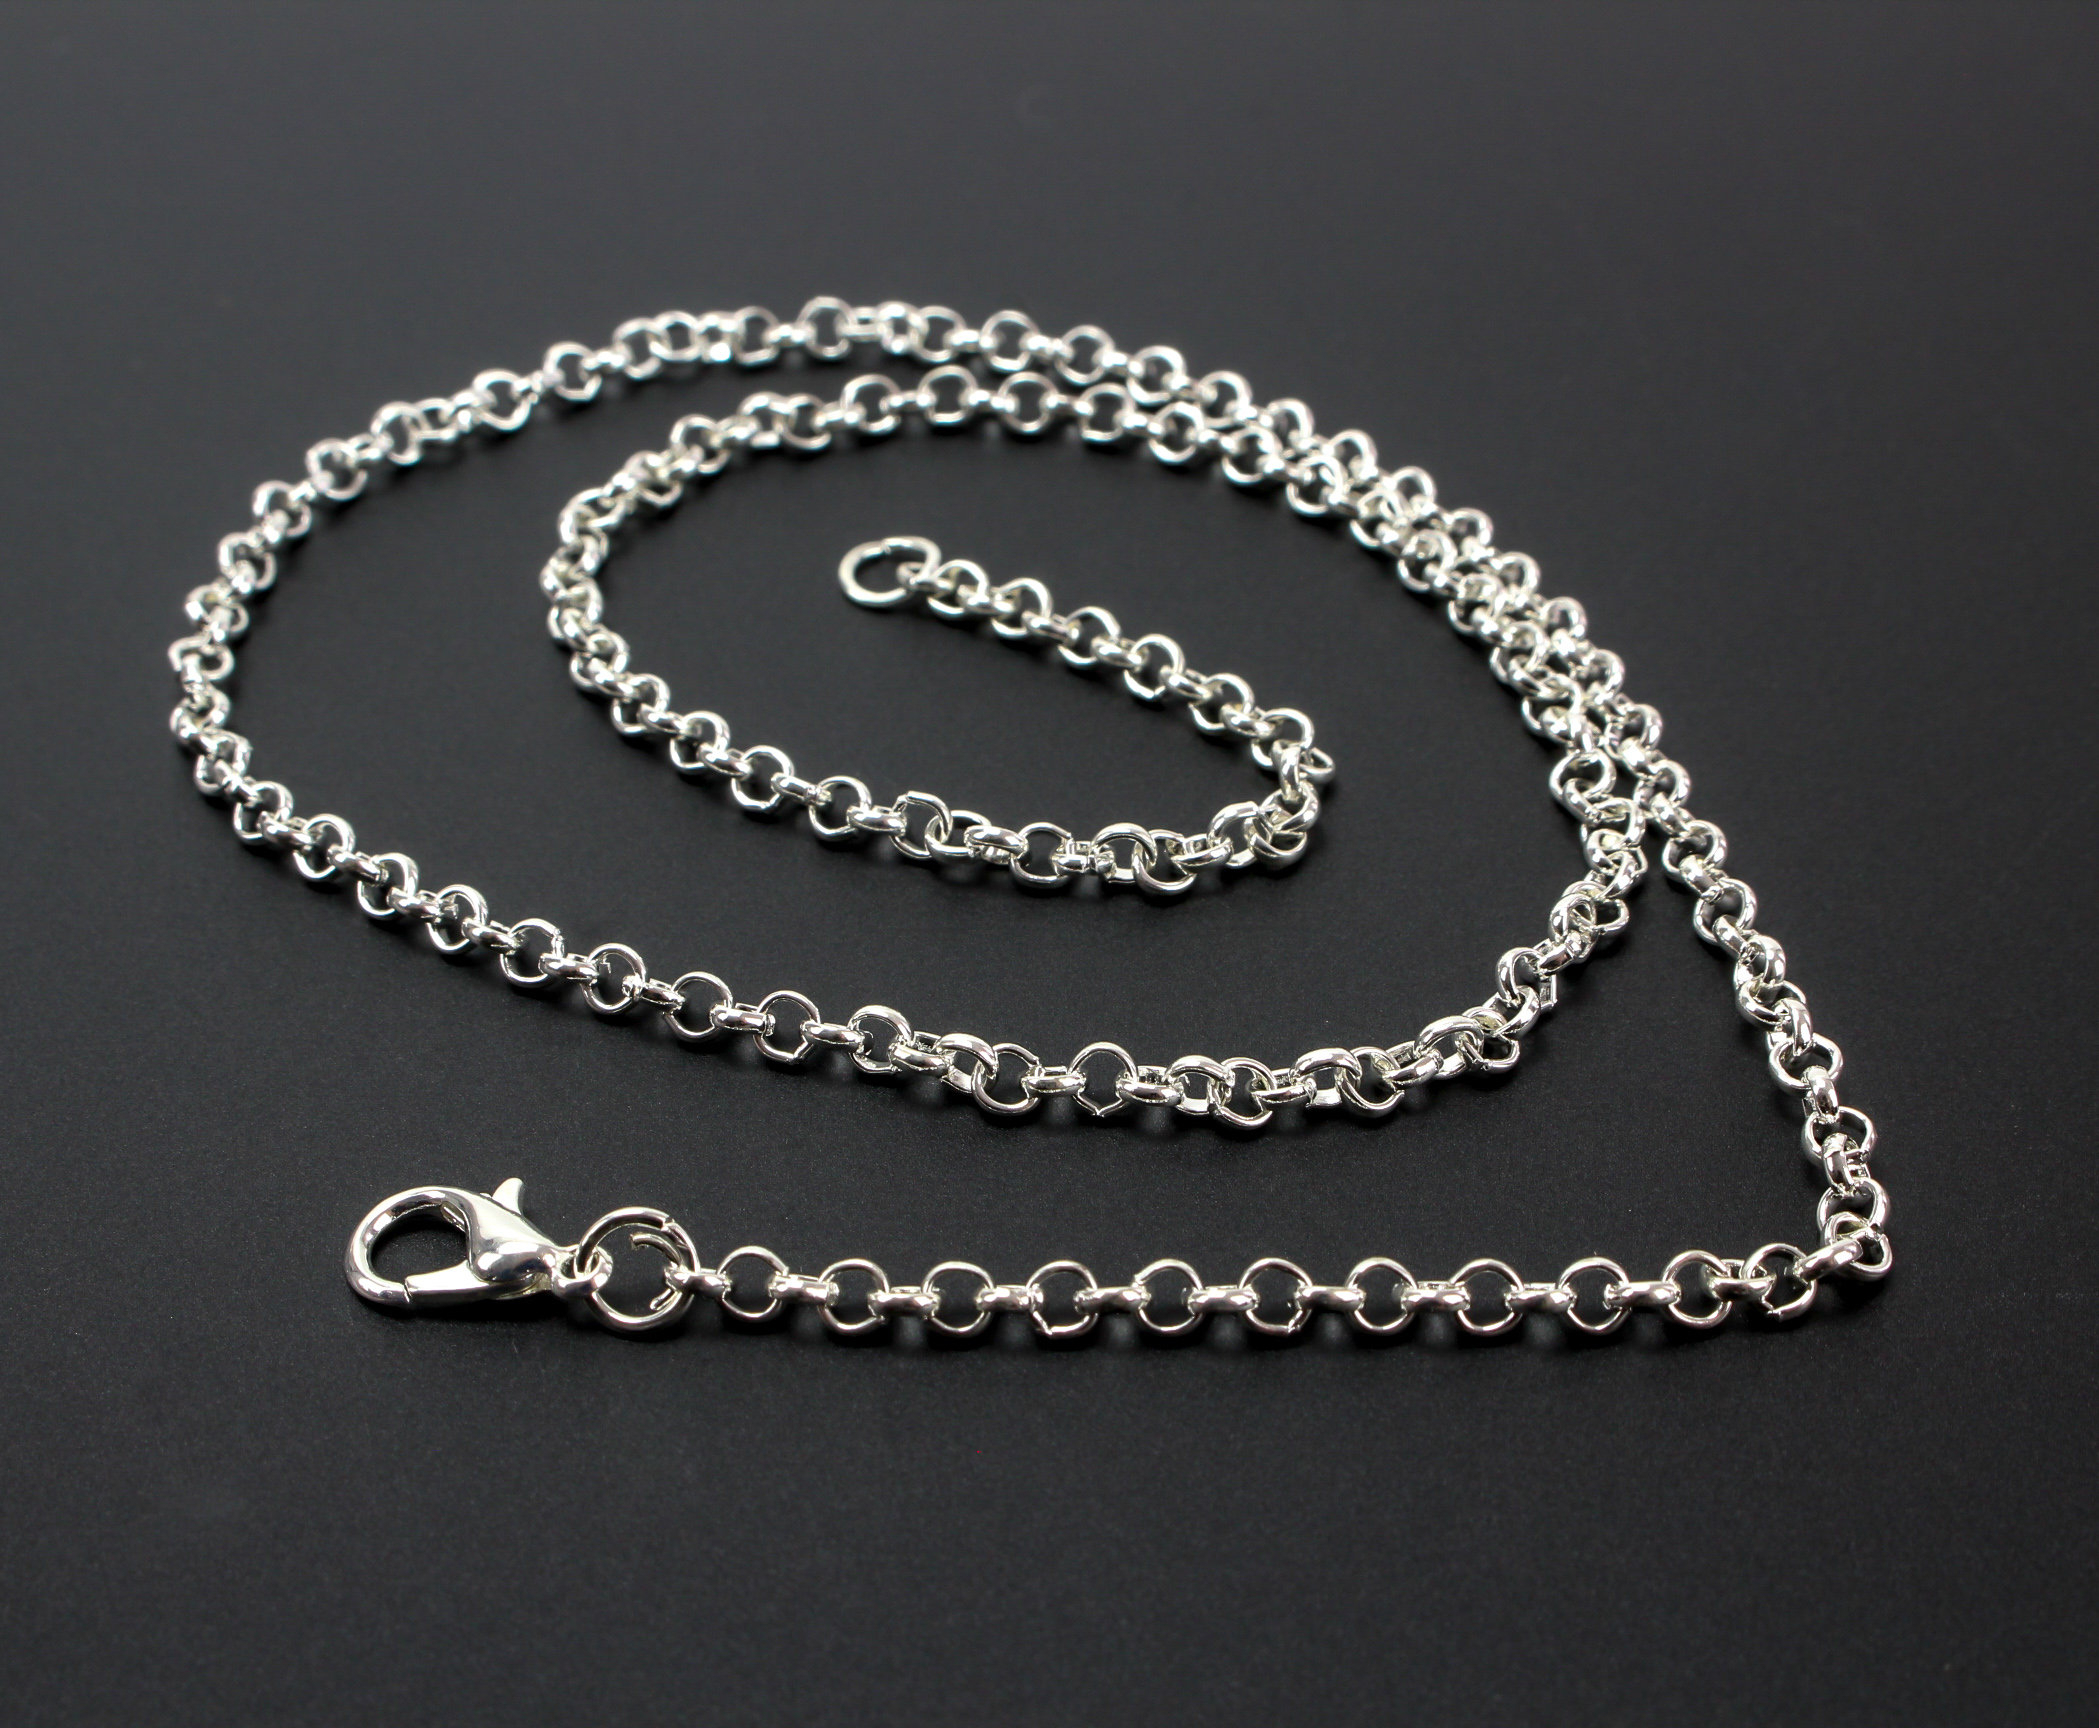 "1 Silver Plated Link Cable Chain Necklace 18"" Long With Lobster Claw Clasp – One Piece For Newest Long Link Cable Chain Necklaces (View 3 of 25)"